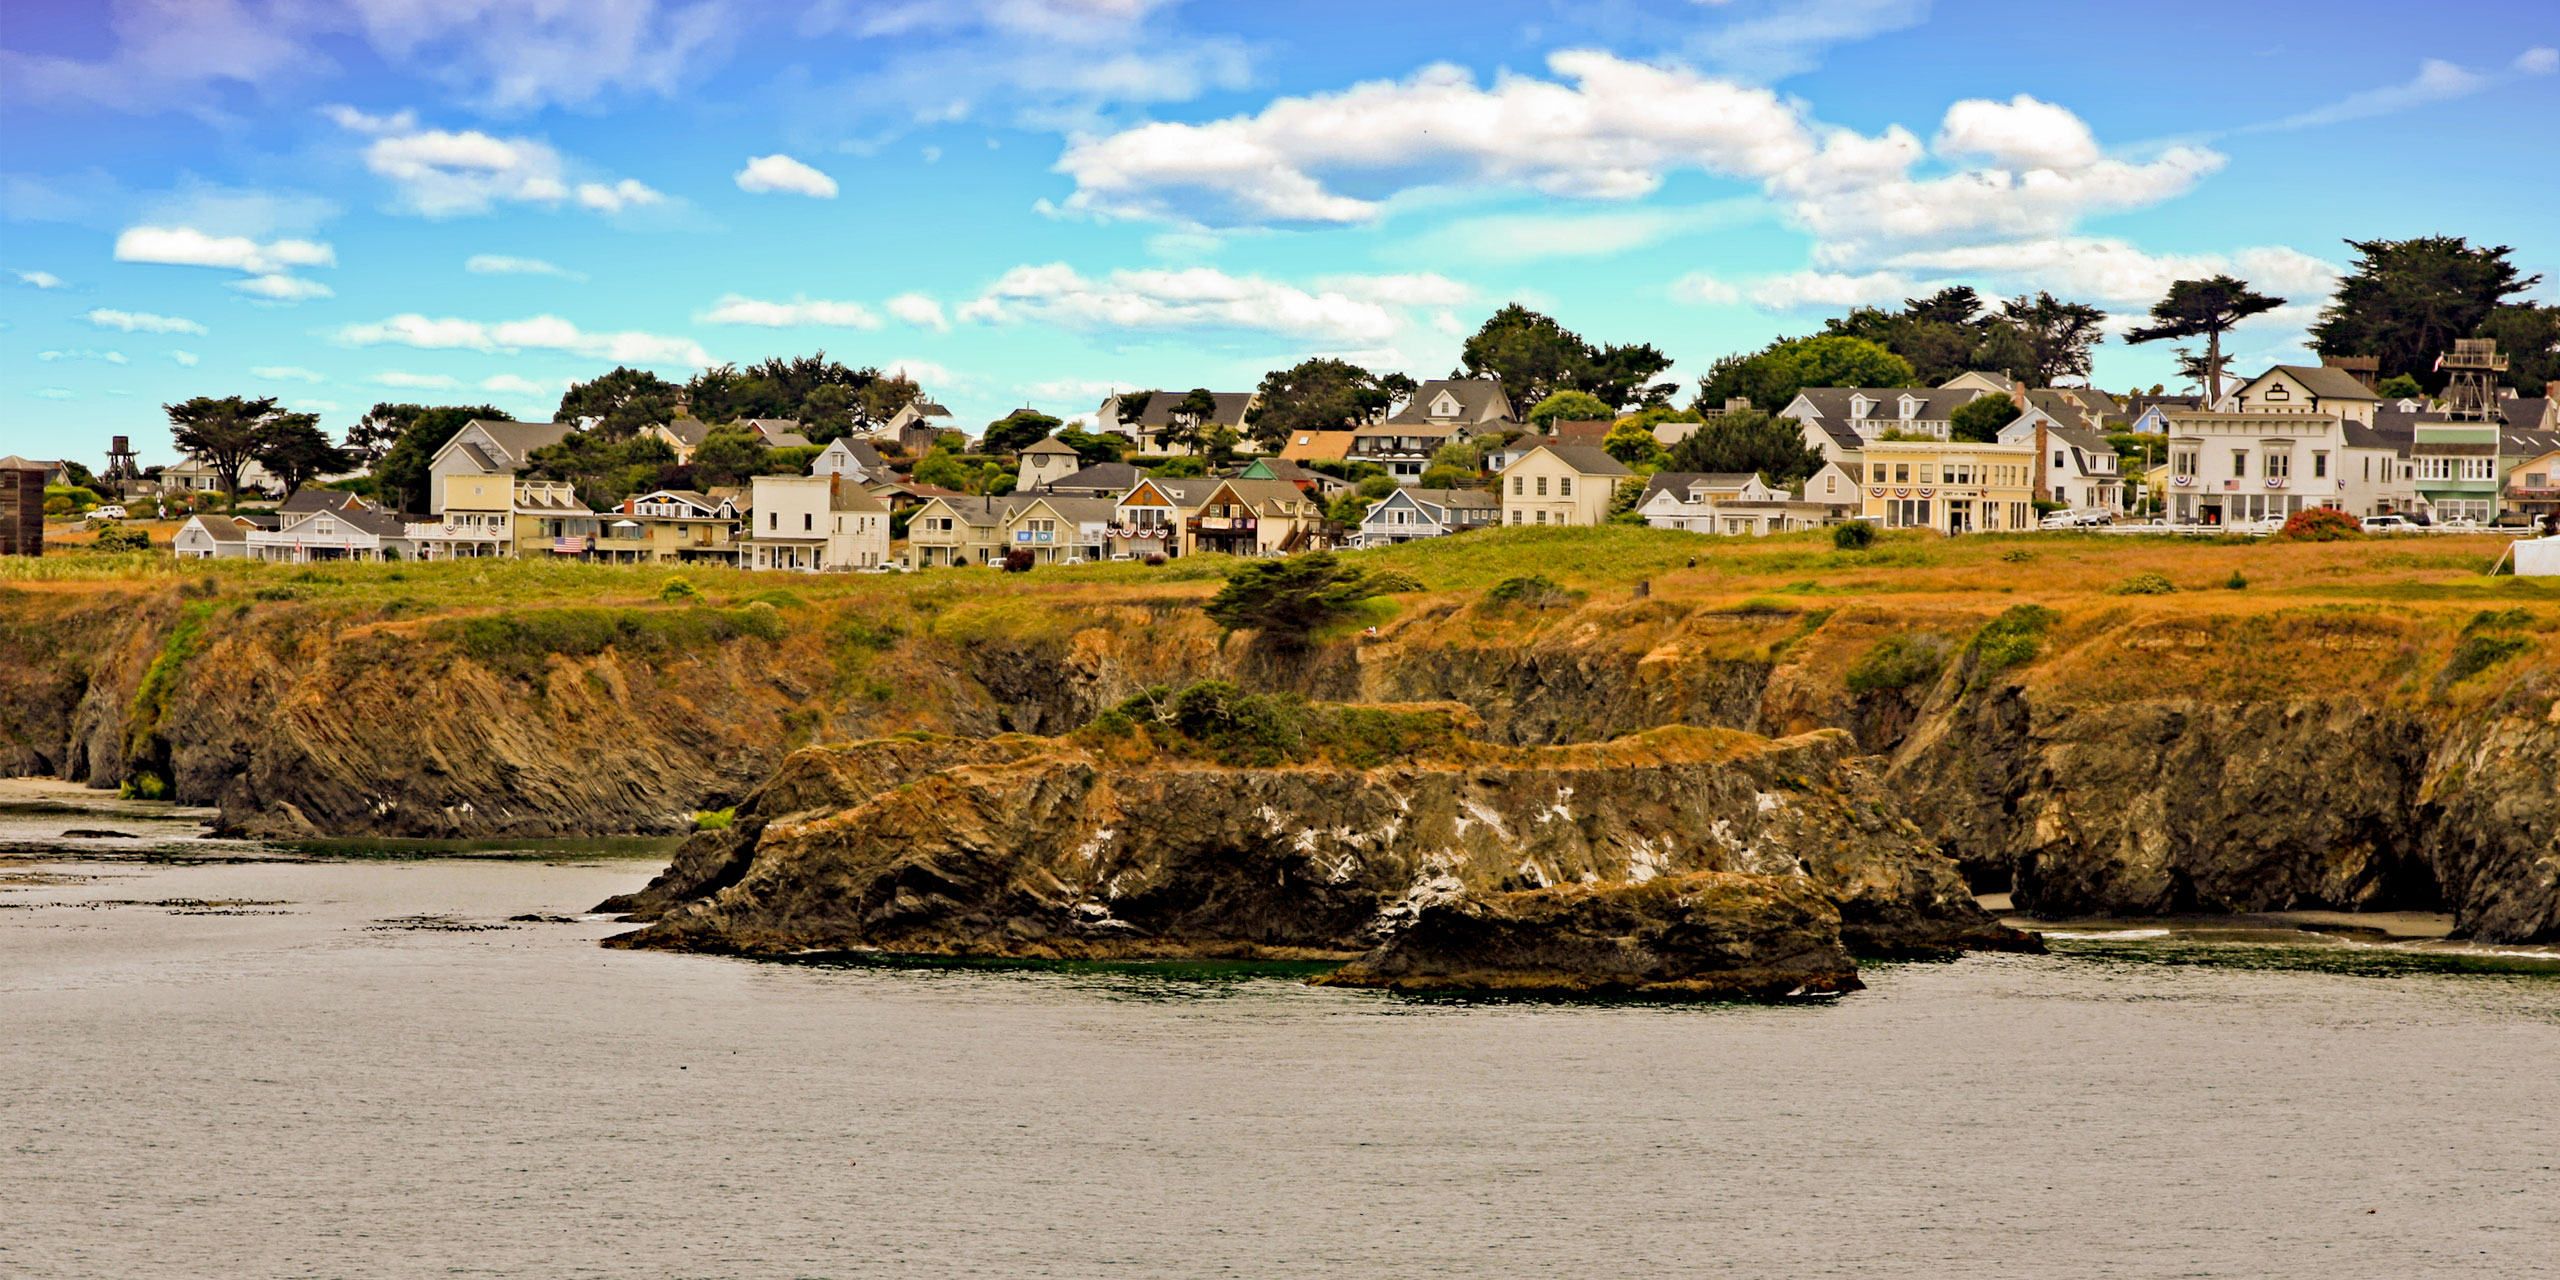 Mendocino, California; Courtesy of Thomas Barrat/Shutterstock.com